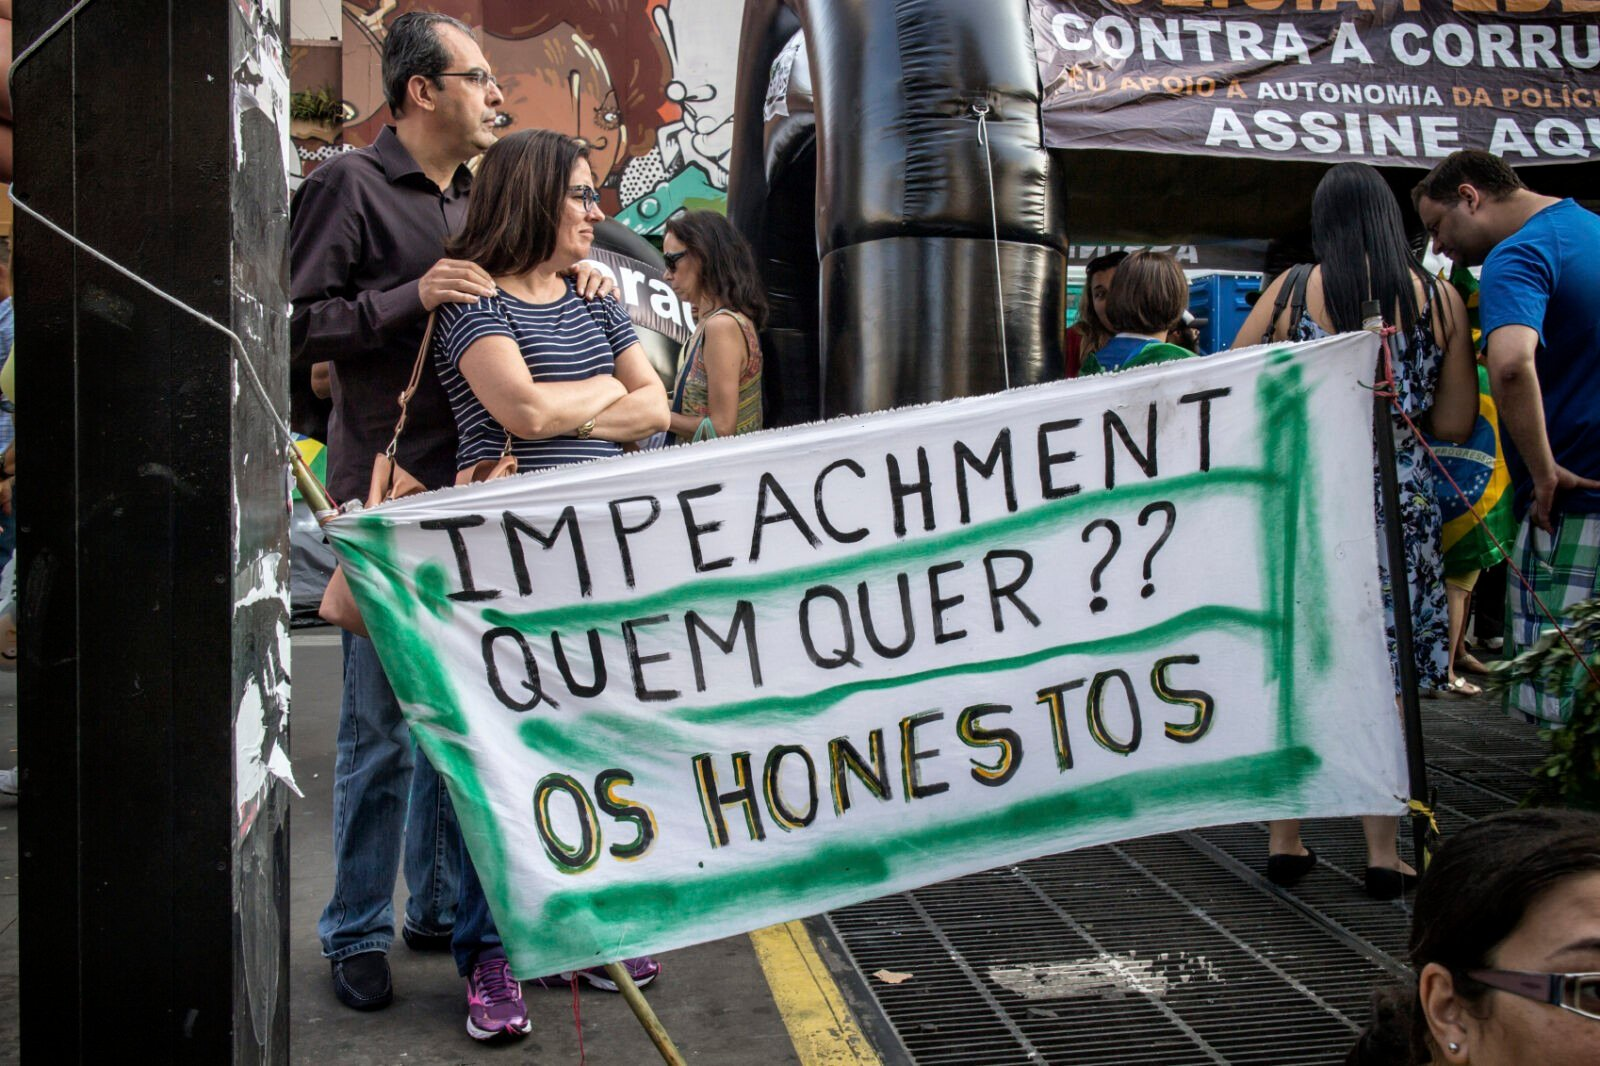 anti corruption protest brazil